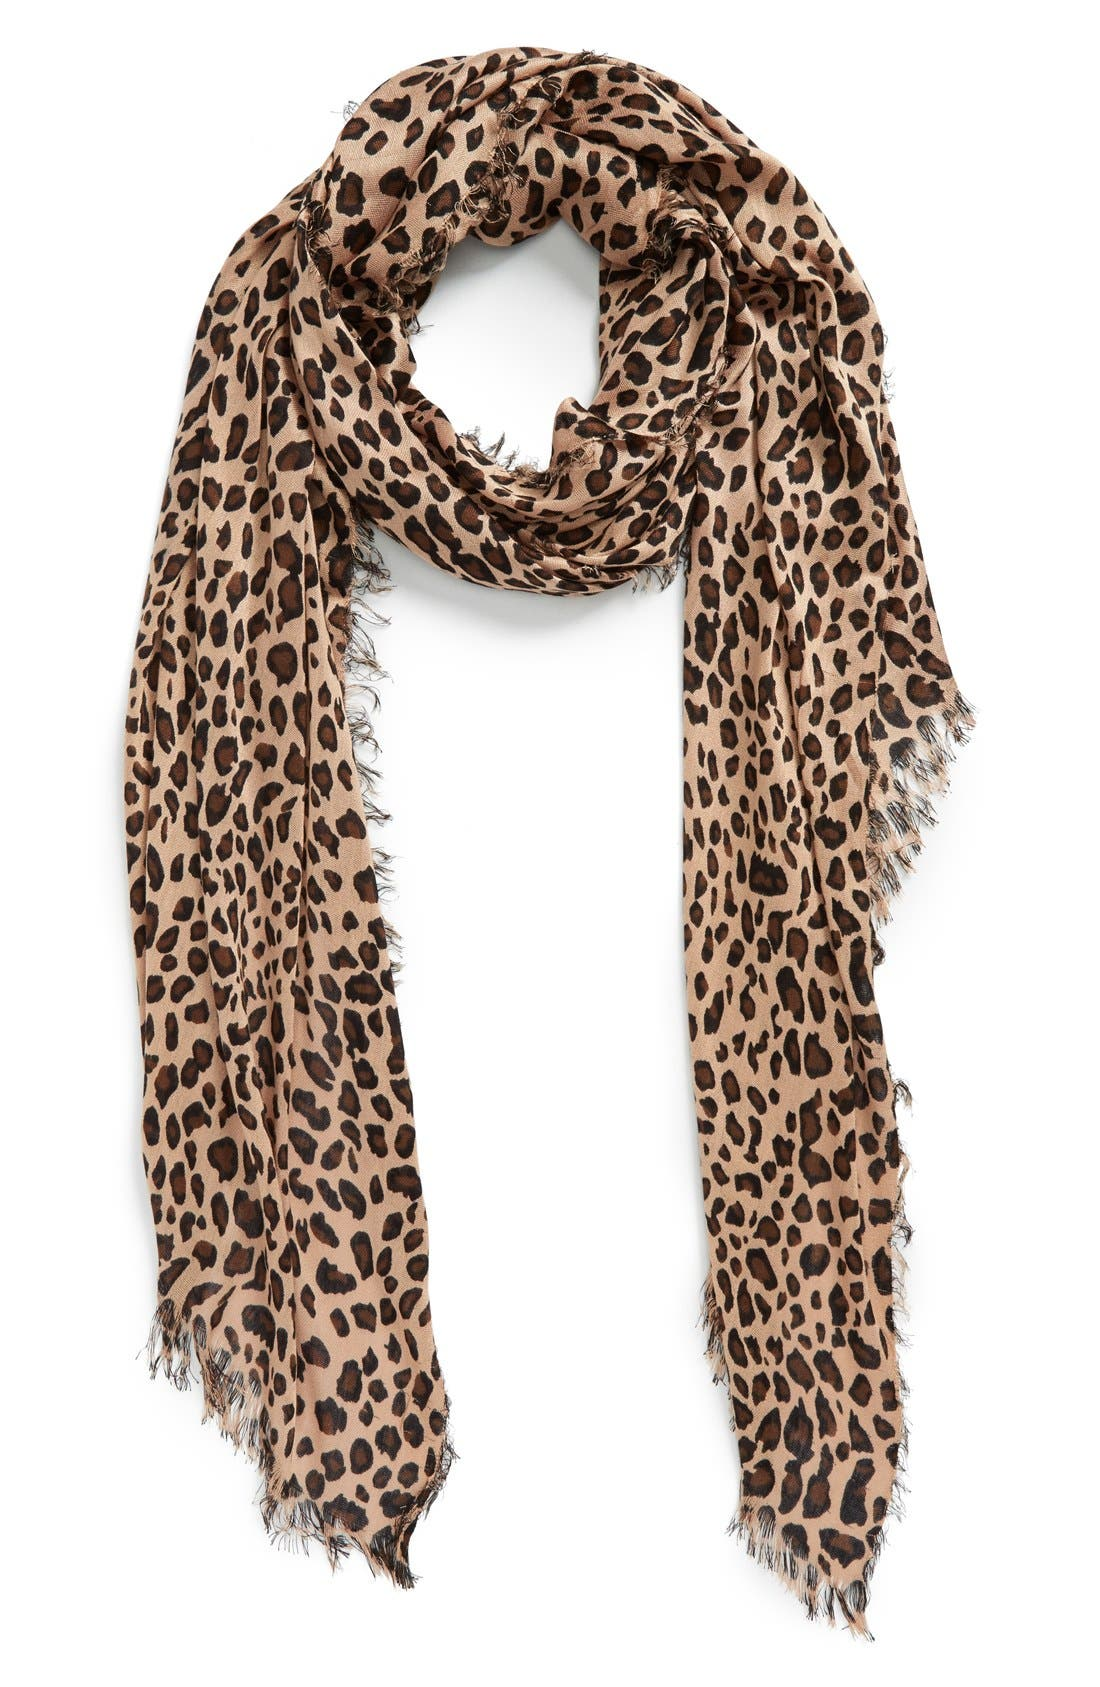 SOLE SOCIETY Leopard Print Scarf, Main, color, BROWN